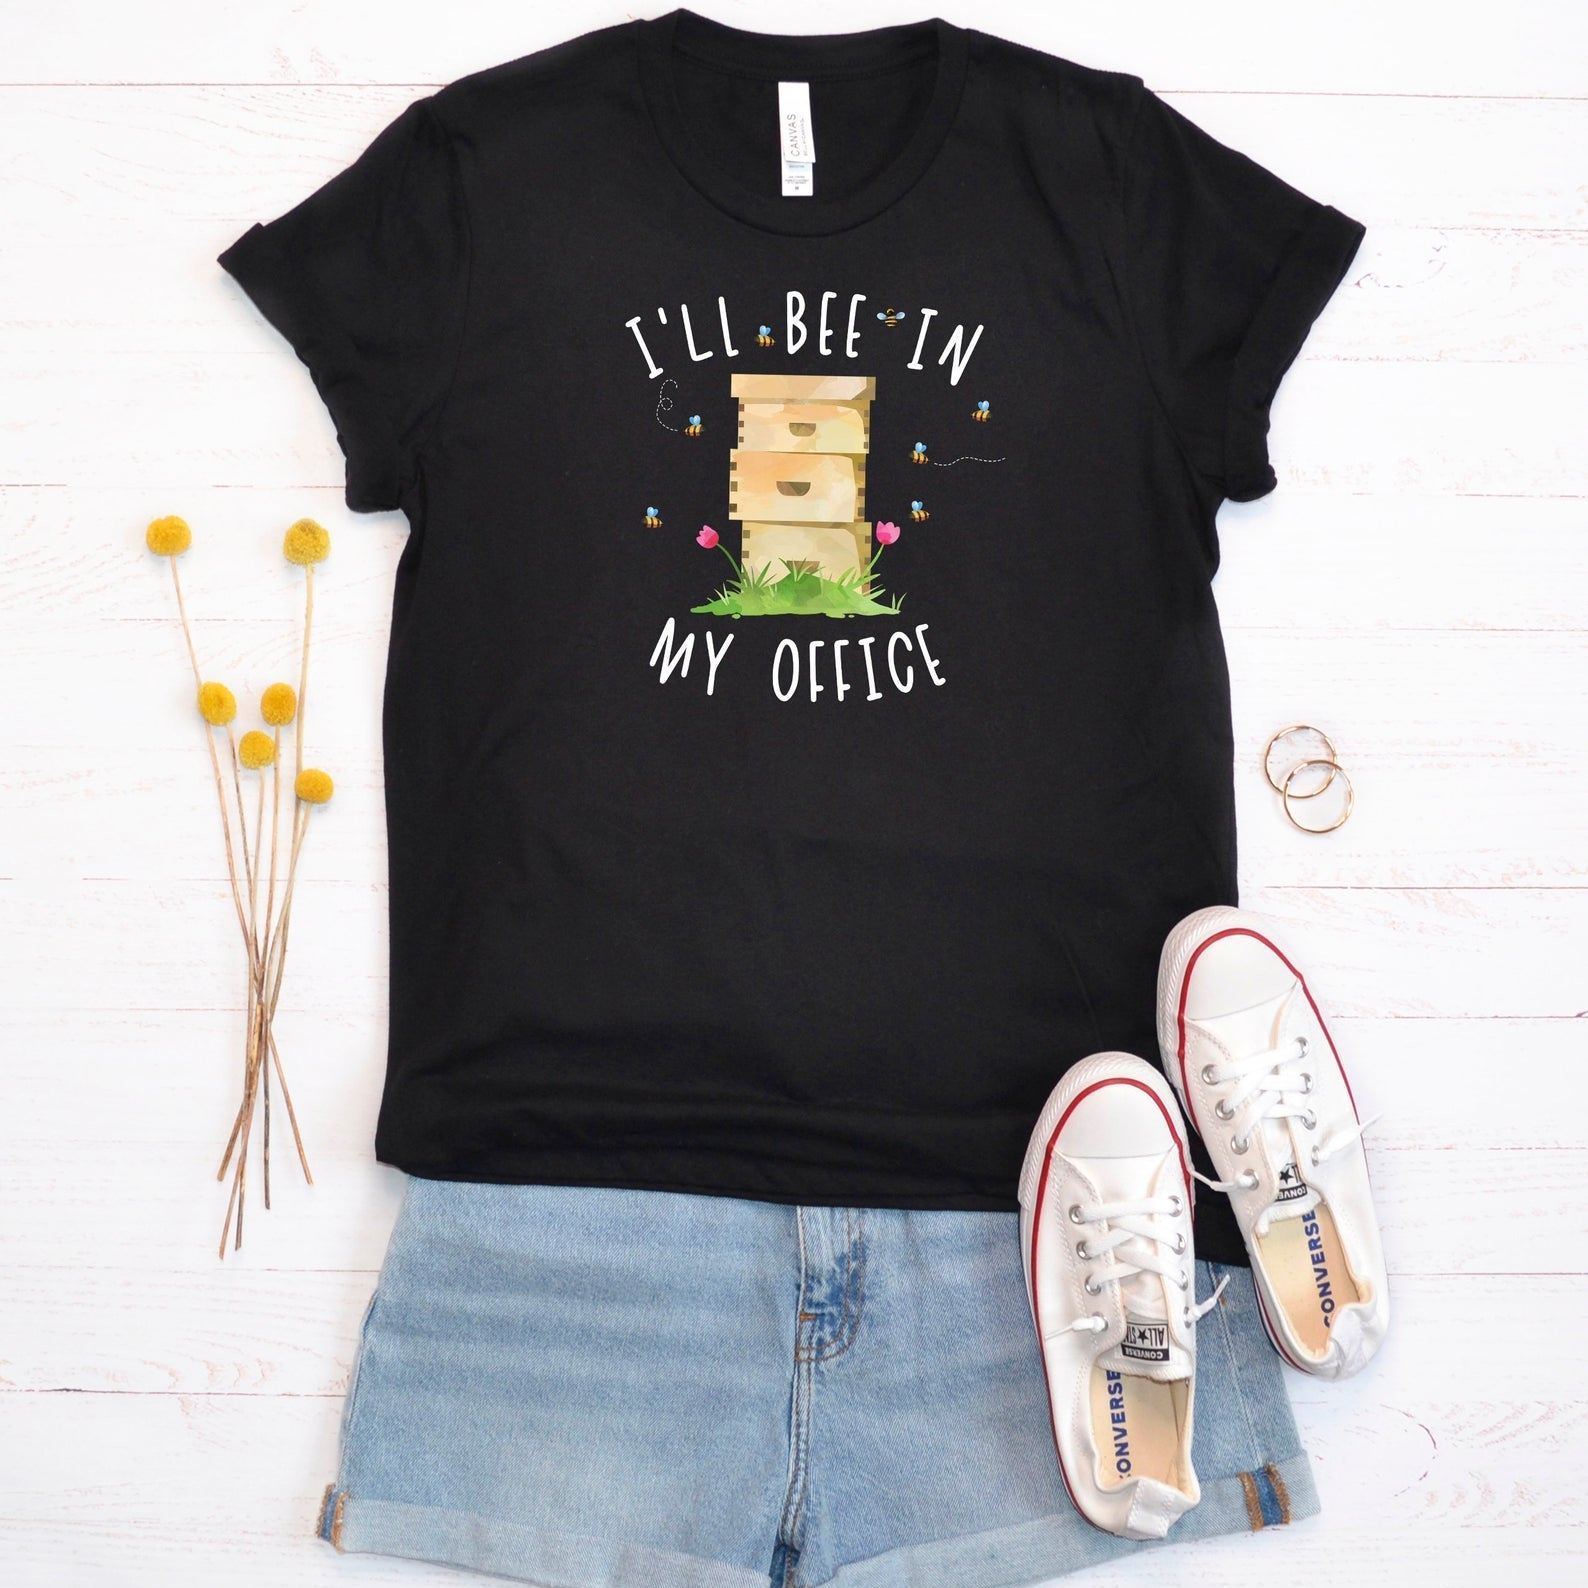 I'll Bee In My Office Beekeeper Shirt, Beekeeping Tee, Honey Bee Lover Gift, Cute Bee Graphic, Bee Short-Sleeve Unisex T-Shirt